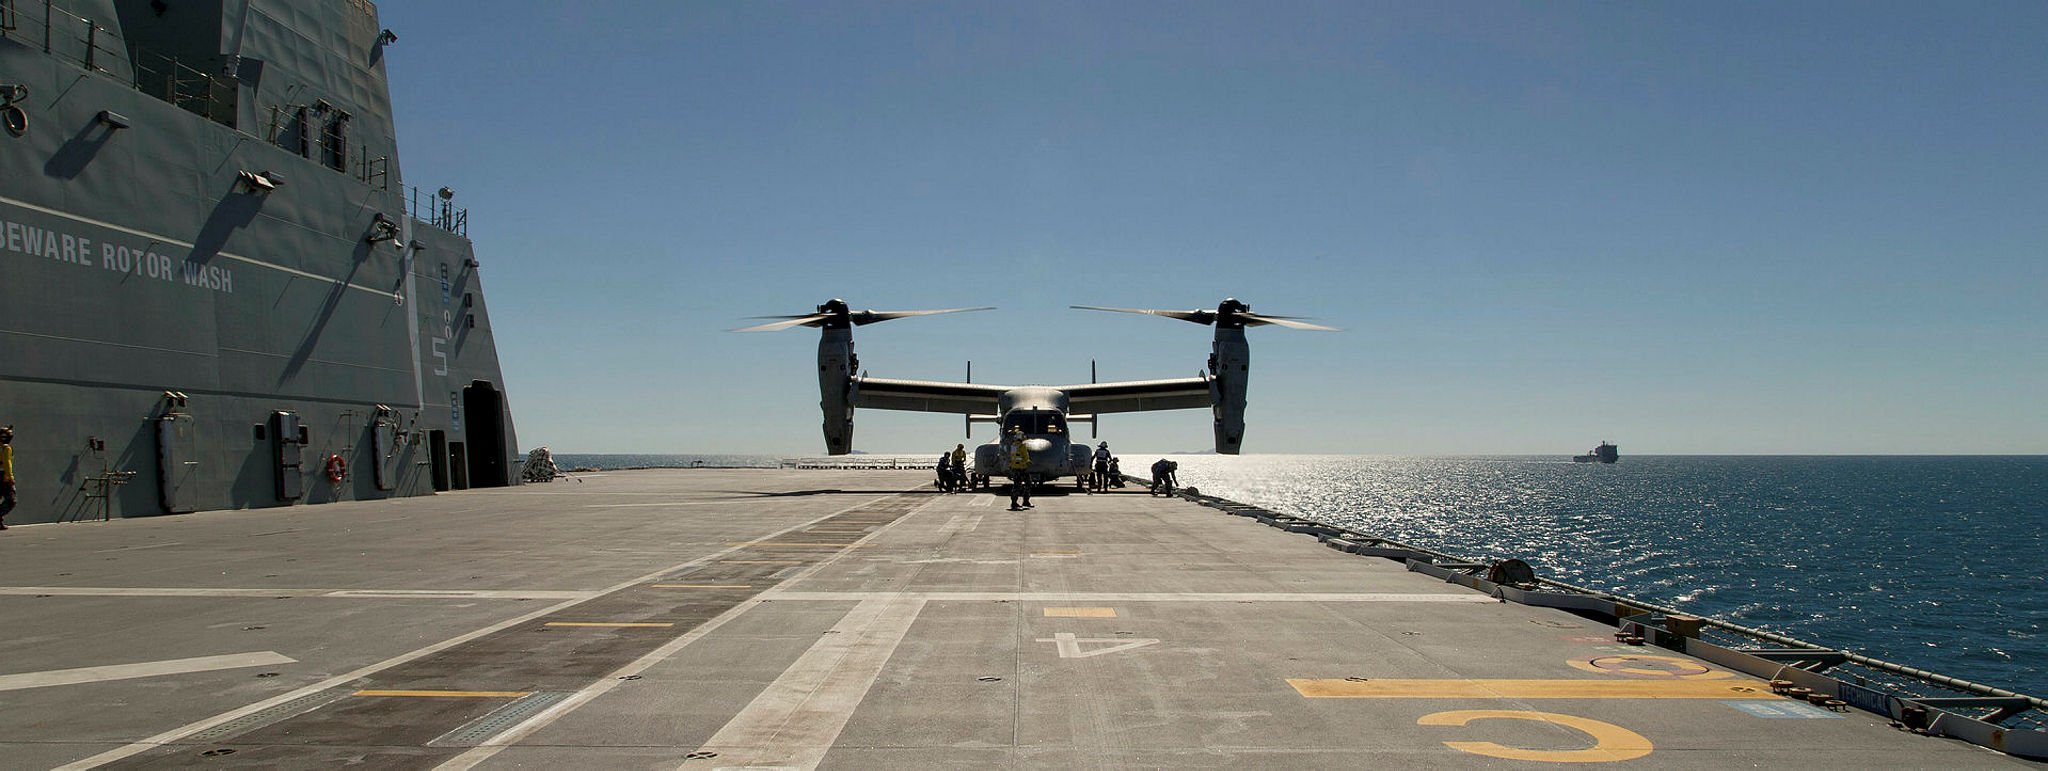 USS Bonhomme Richard's V22 Osprey lands on HMAS Canberra during Talisman Sabre 17 (Photo: Australian Defence).